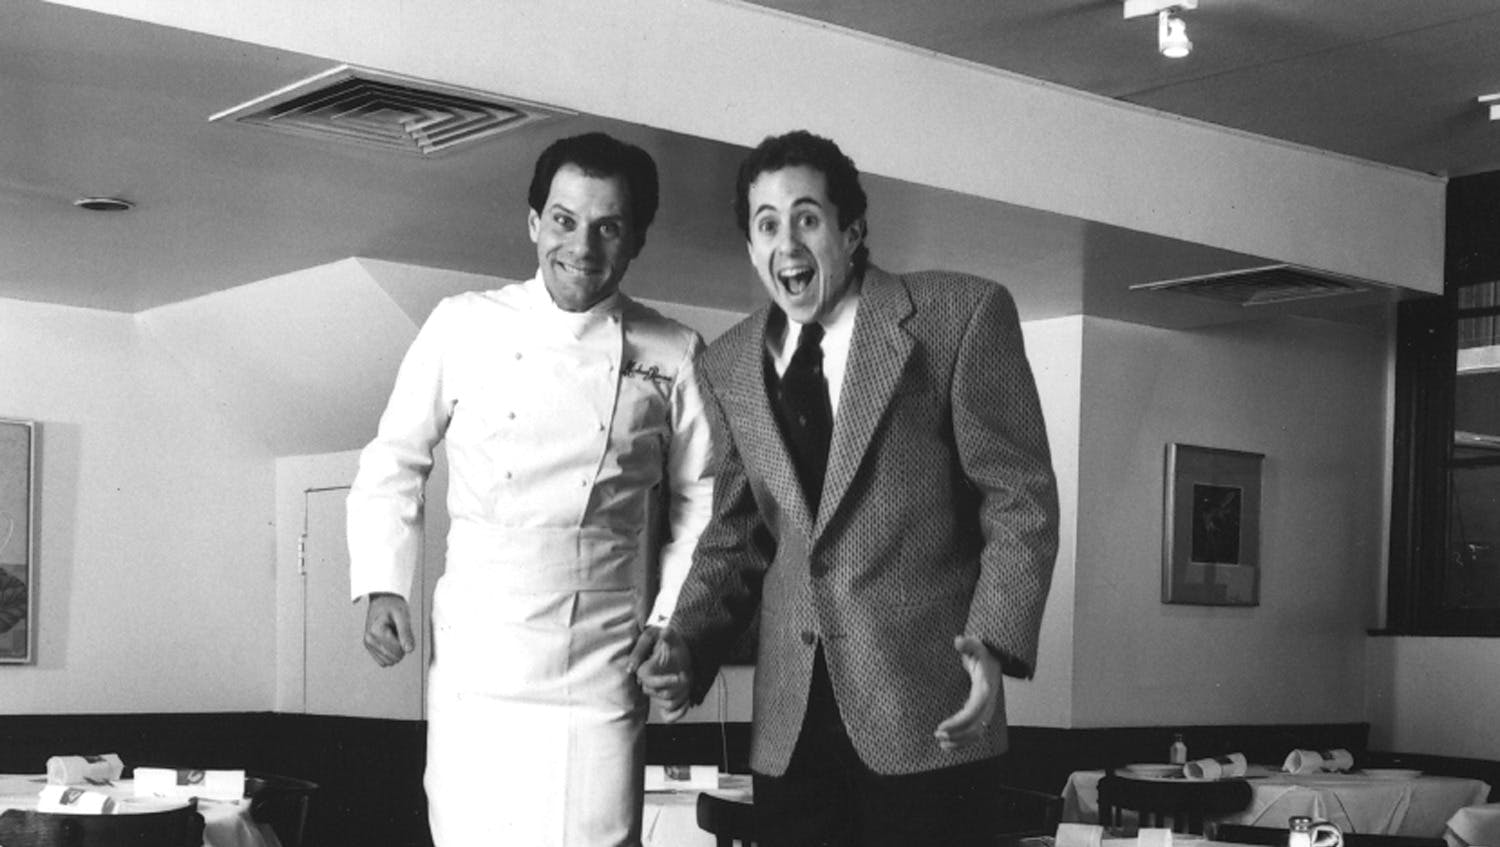 Danny Meyer and Chef Michael Romano clowning it up for the camera